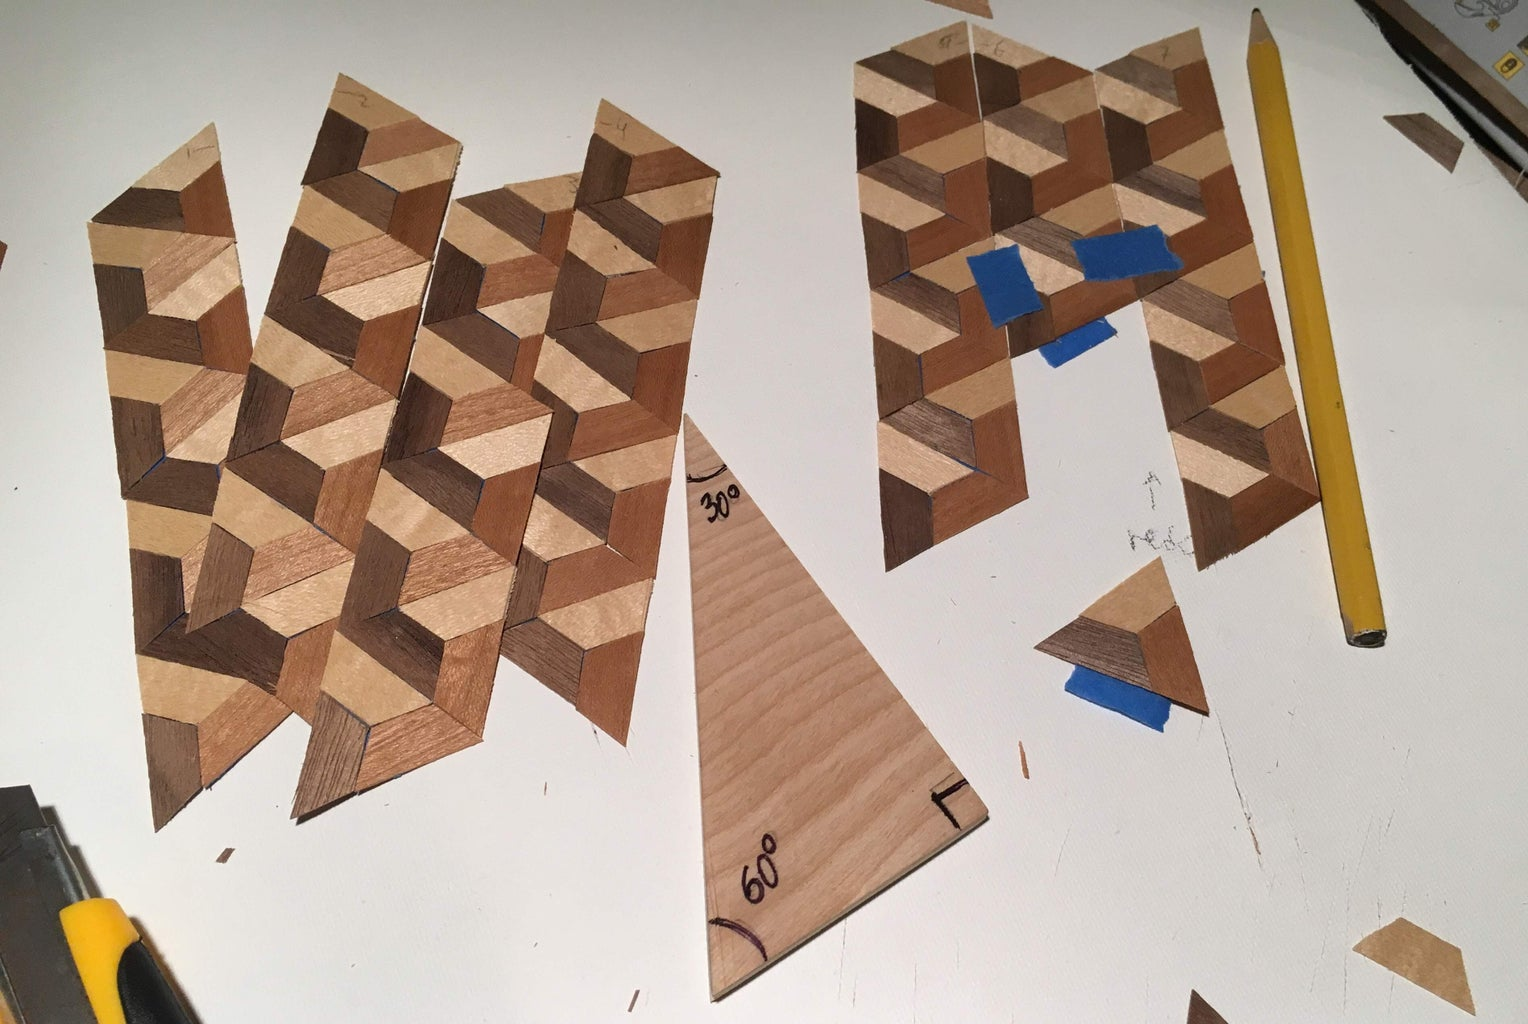 Taping the Trapezoids